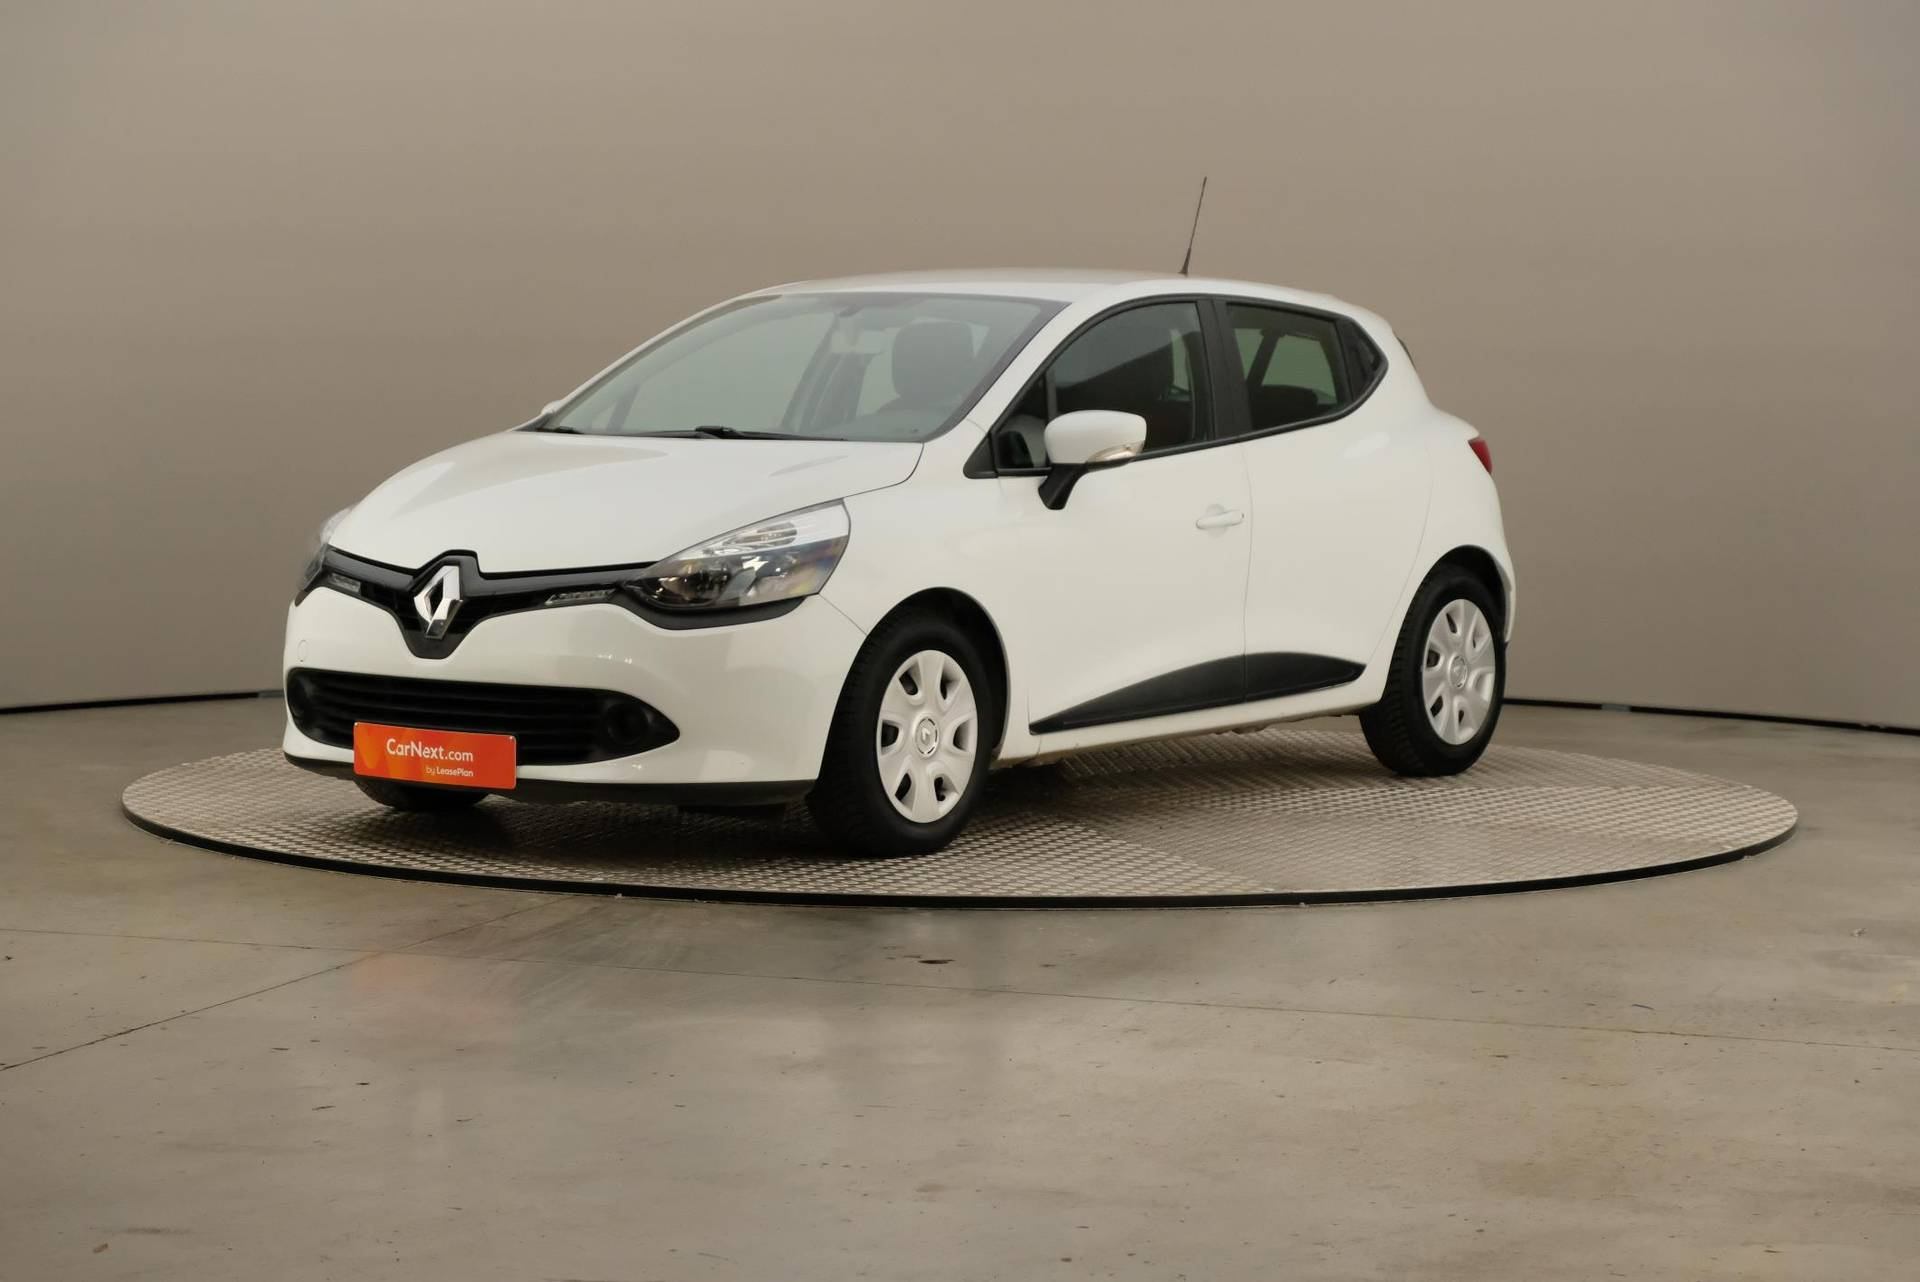 Renault Clio 1.2 16V Collection LED CRUISECONTROL, 360-image35